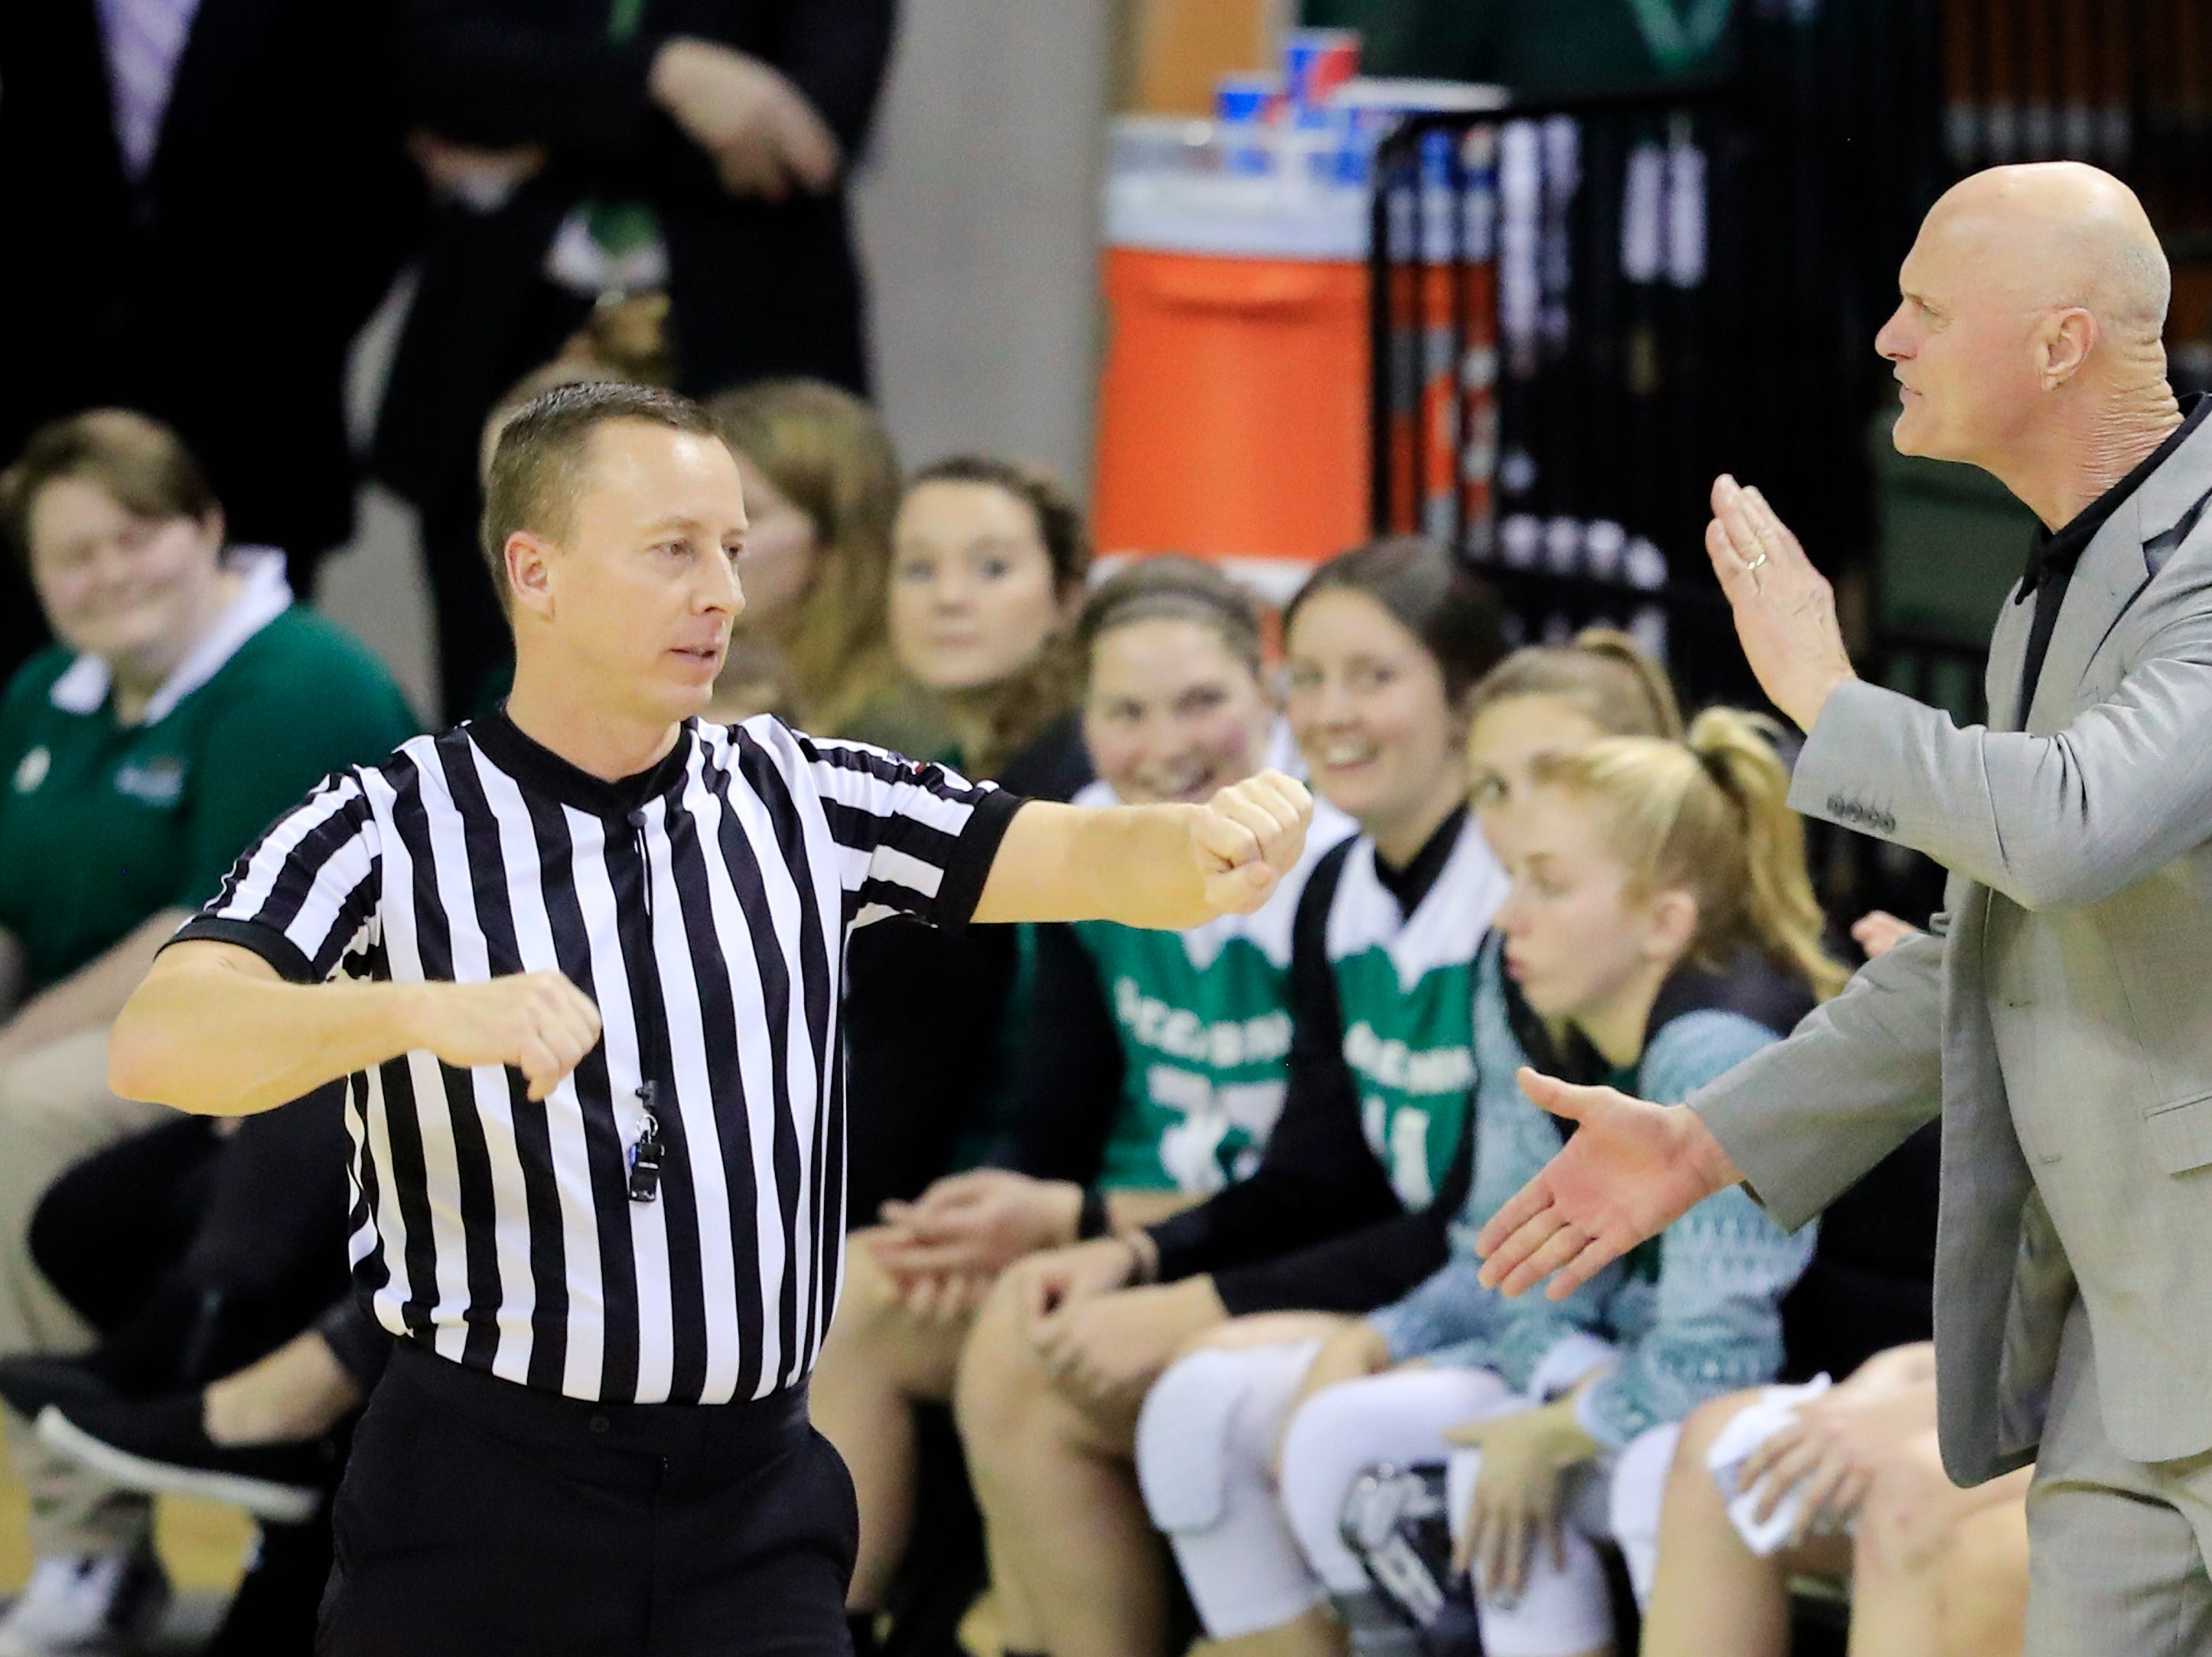 Green Bay Phoenix head coach Kevin Borseth reacts after a foul against the Phoenix in a Horizon League women's basketball game at the Kress Center on Thursday, February 7, 2019 in Green Bay, Wis.